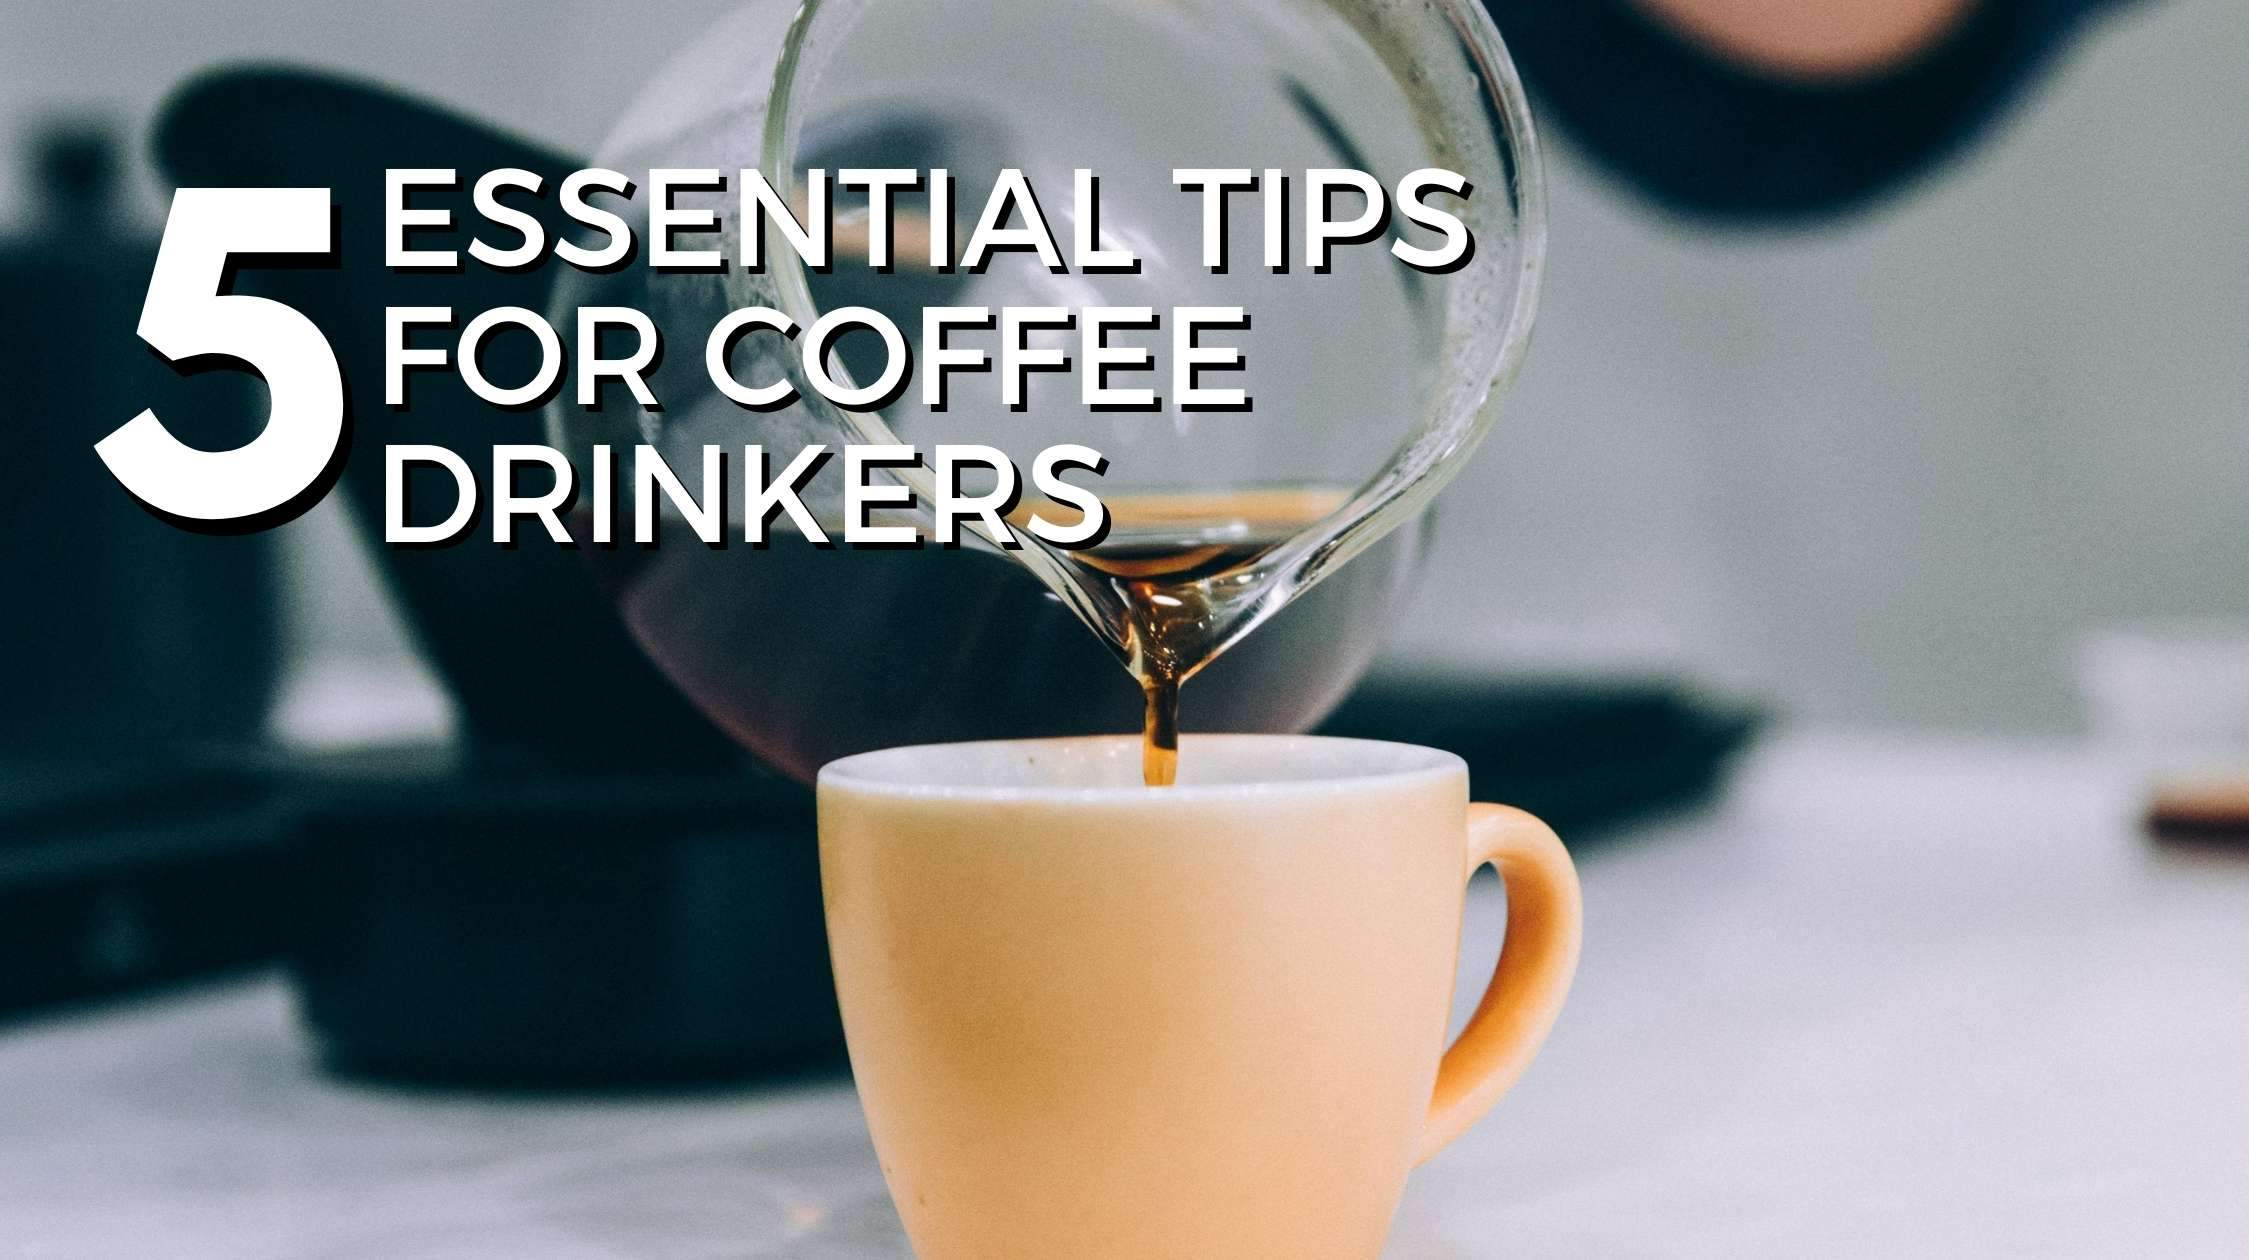 5 Essential Tips for Coffee Drinkers